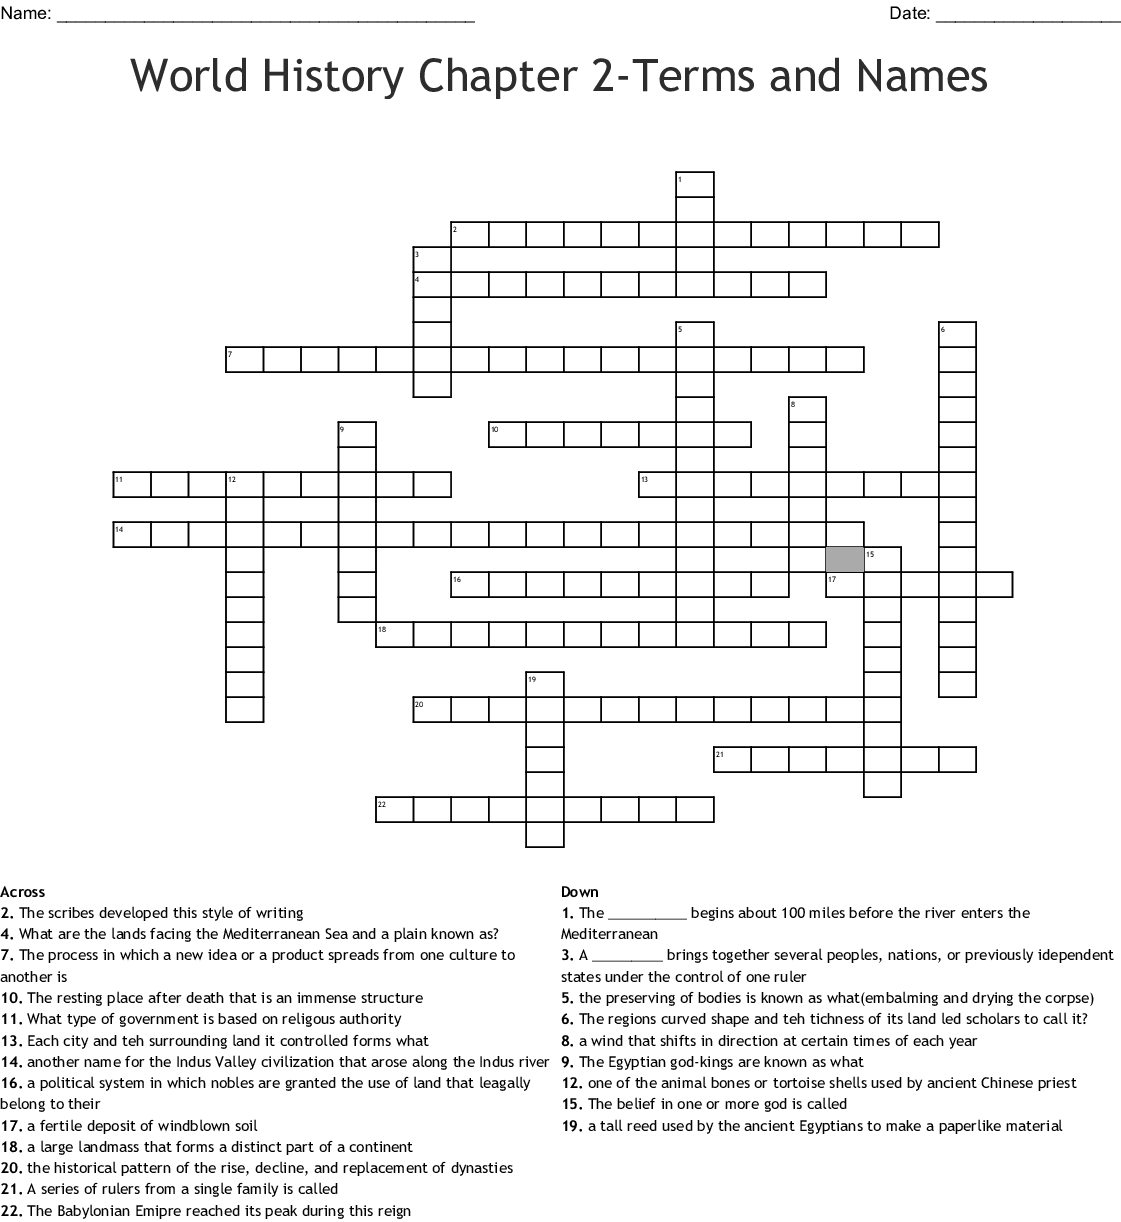 EARLY RIVER VALLEY CIVILIZATIONS Word Search - WordMint